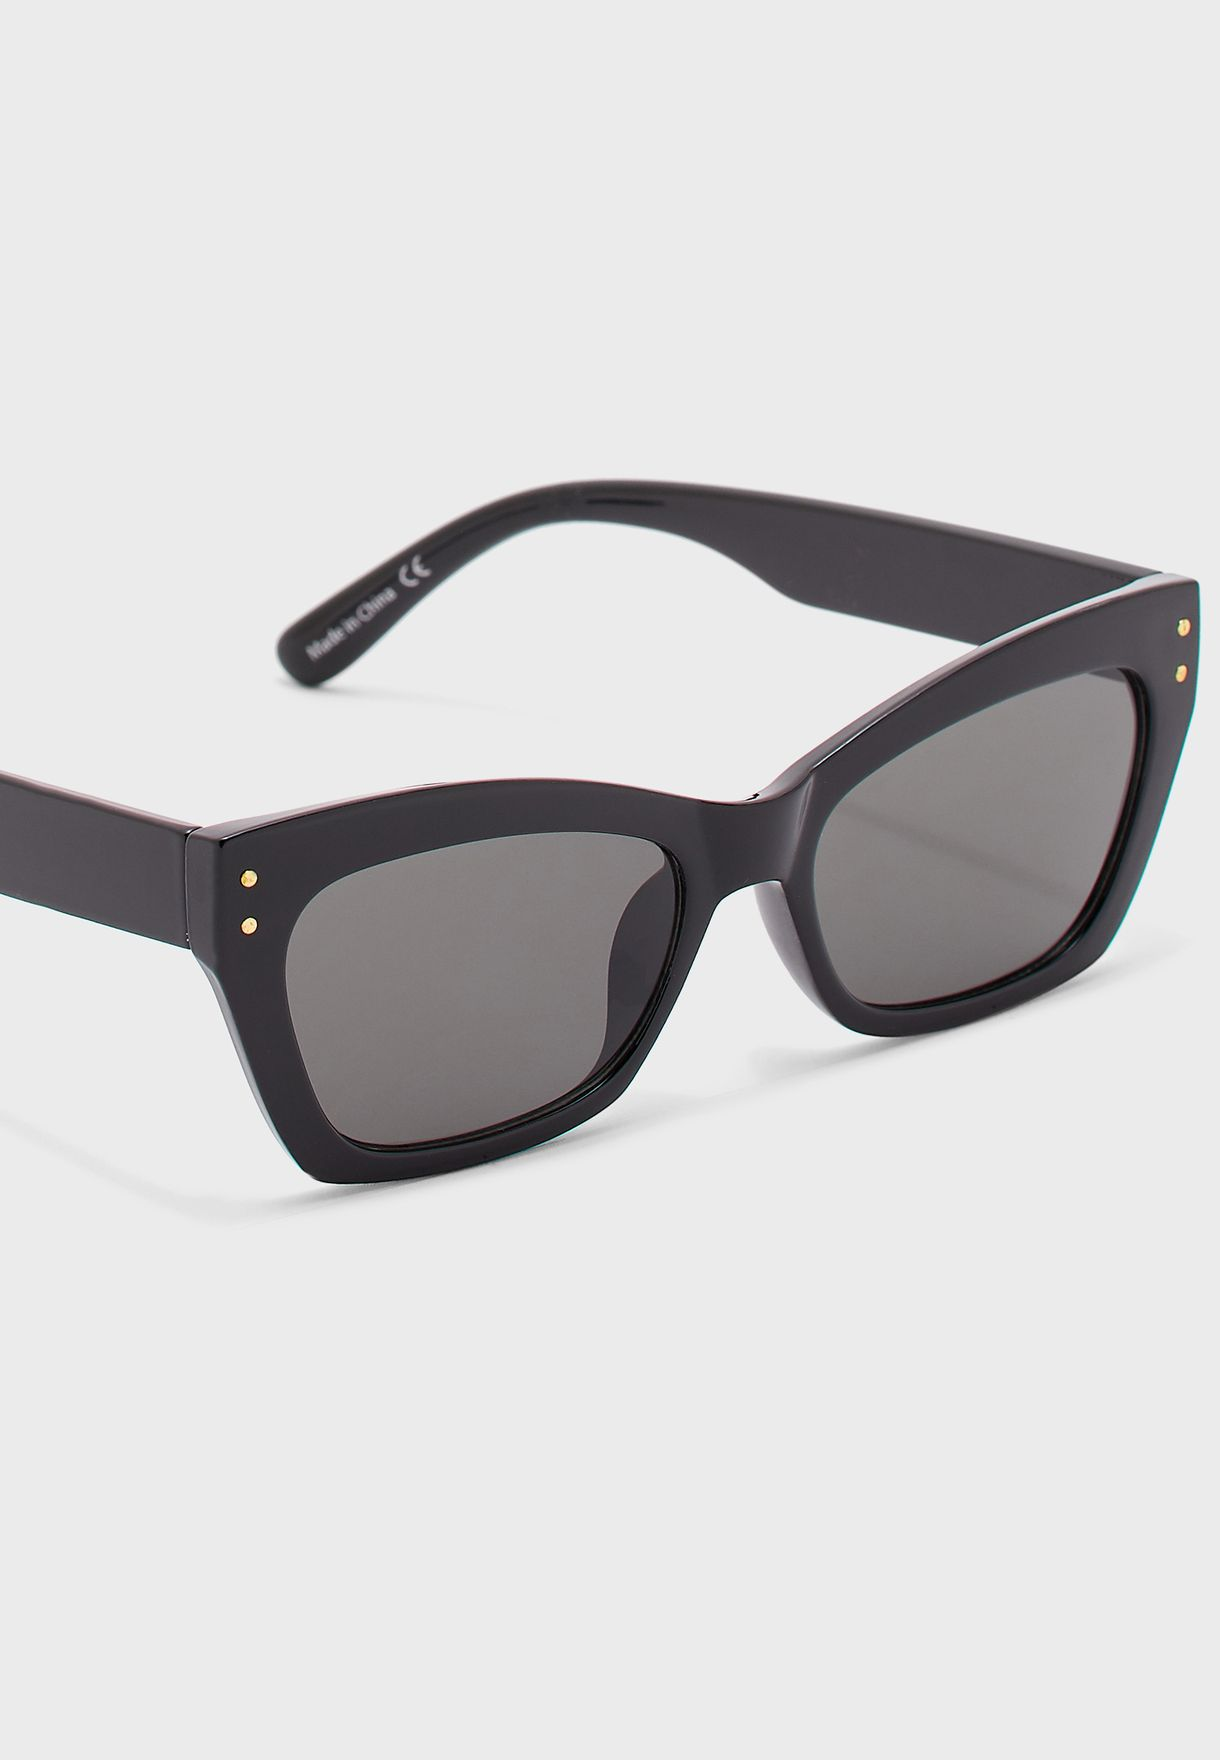 Jeroesa Sunglasses